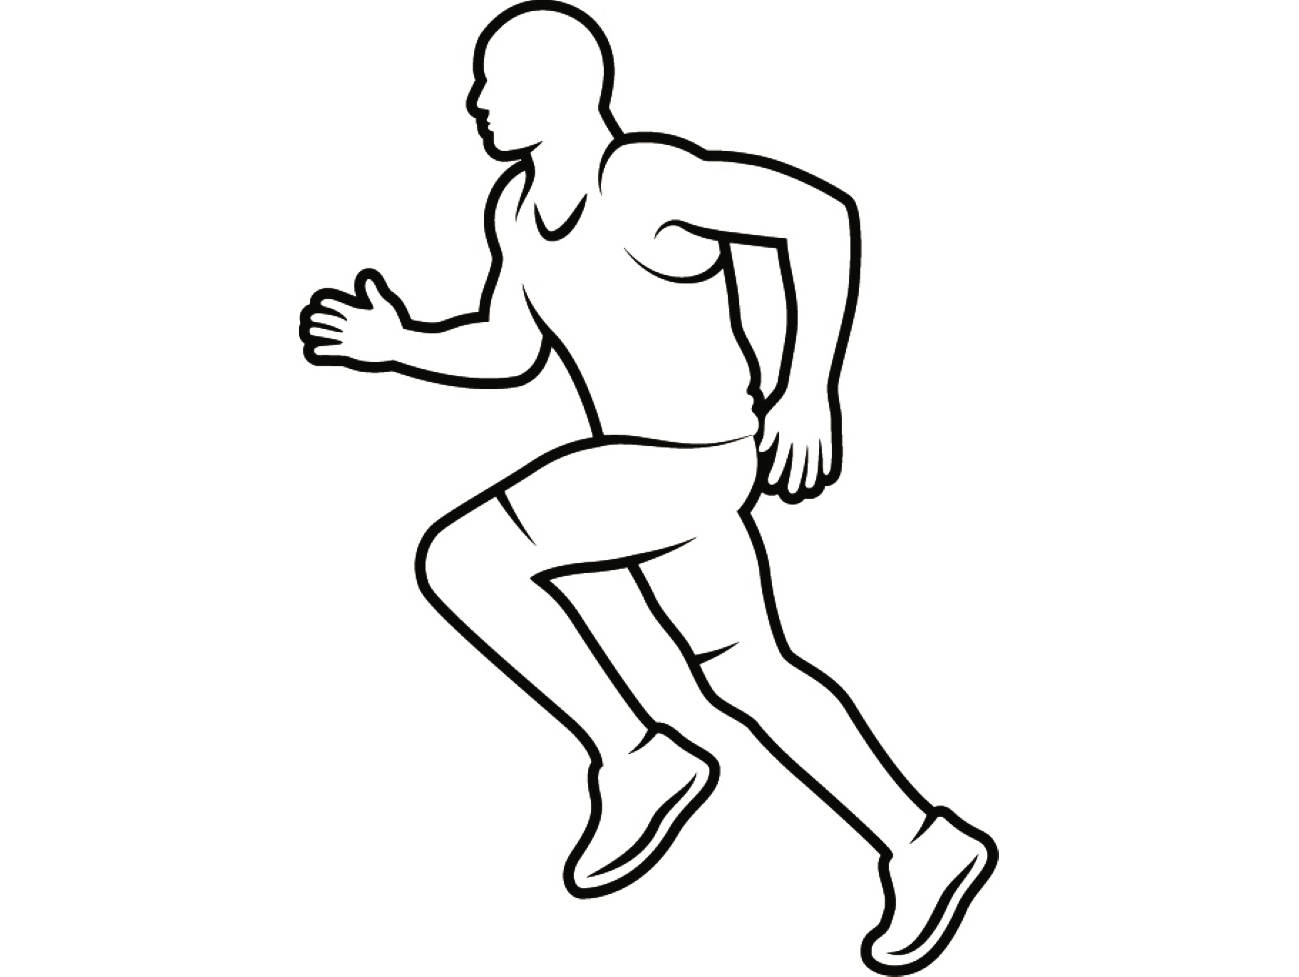 Running Person Drawing